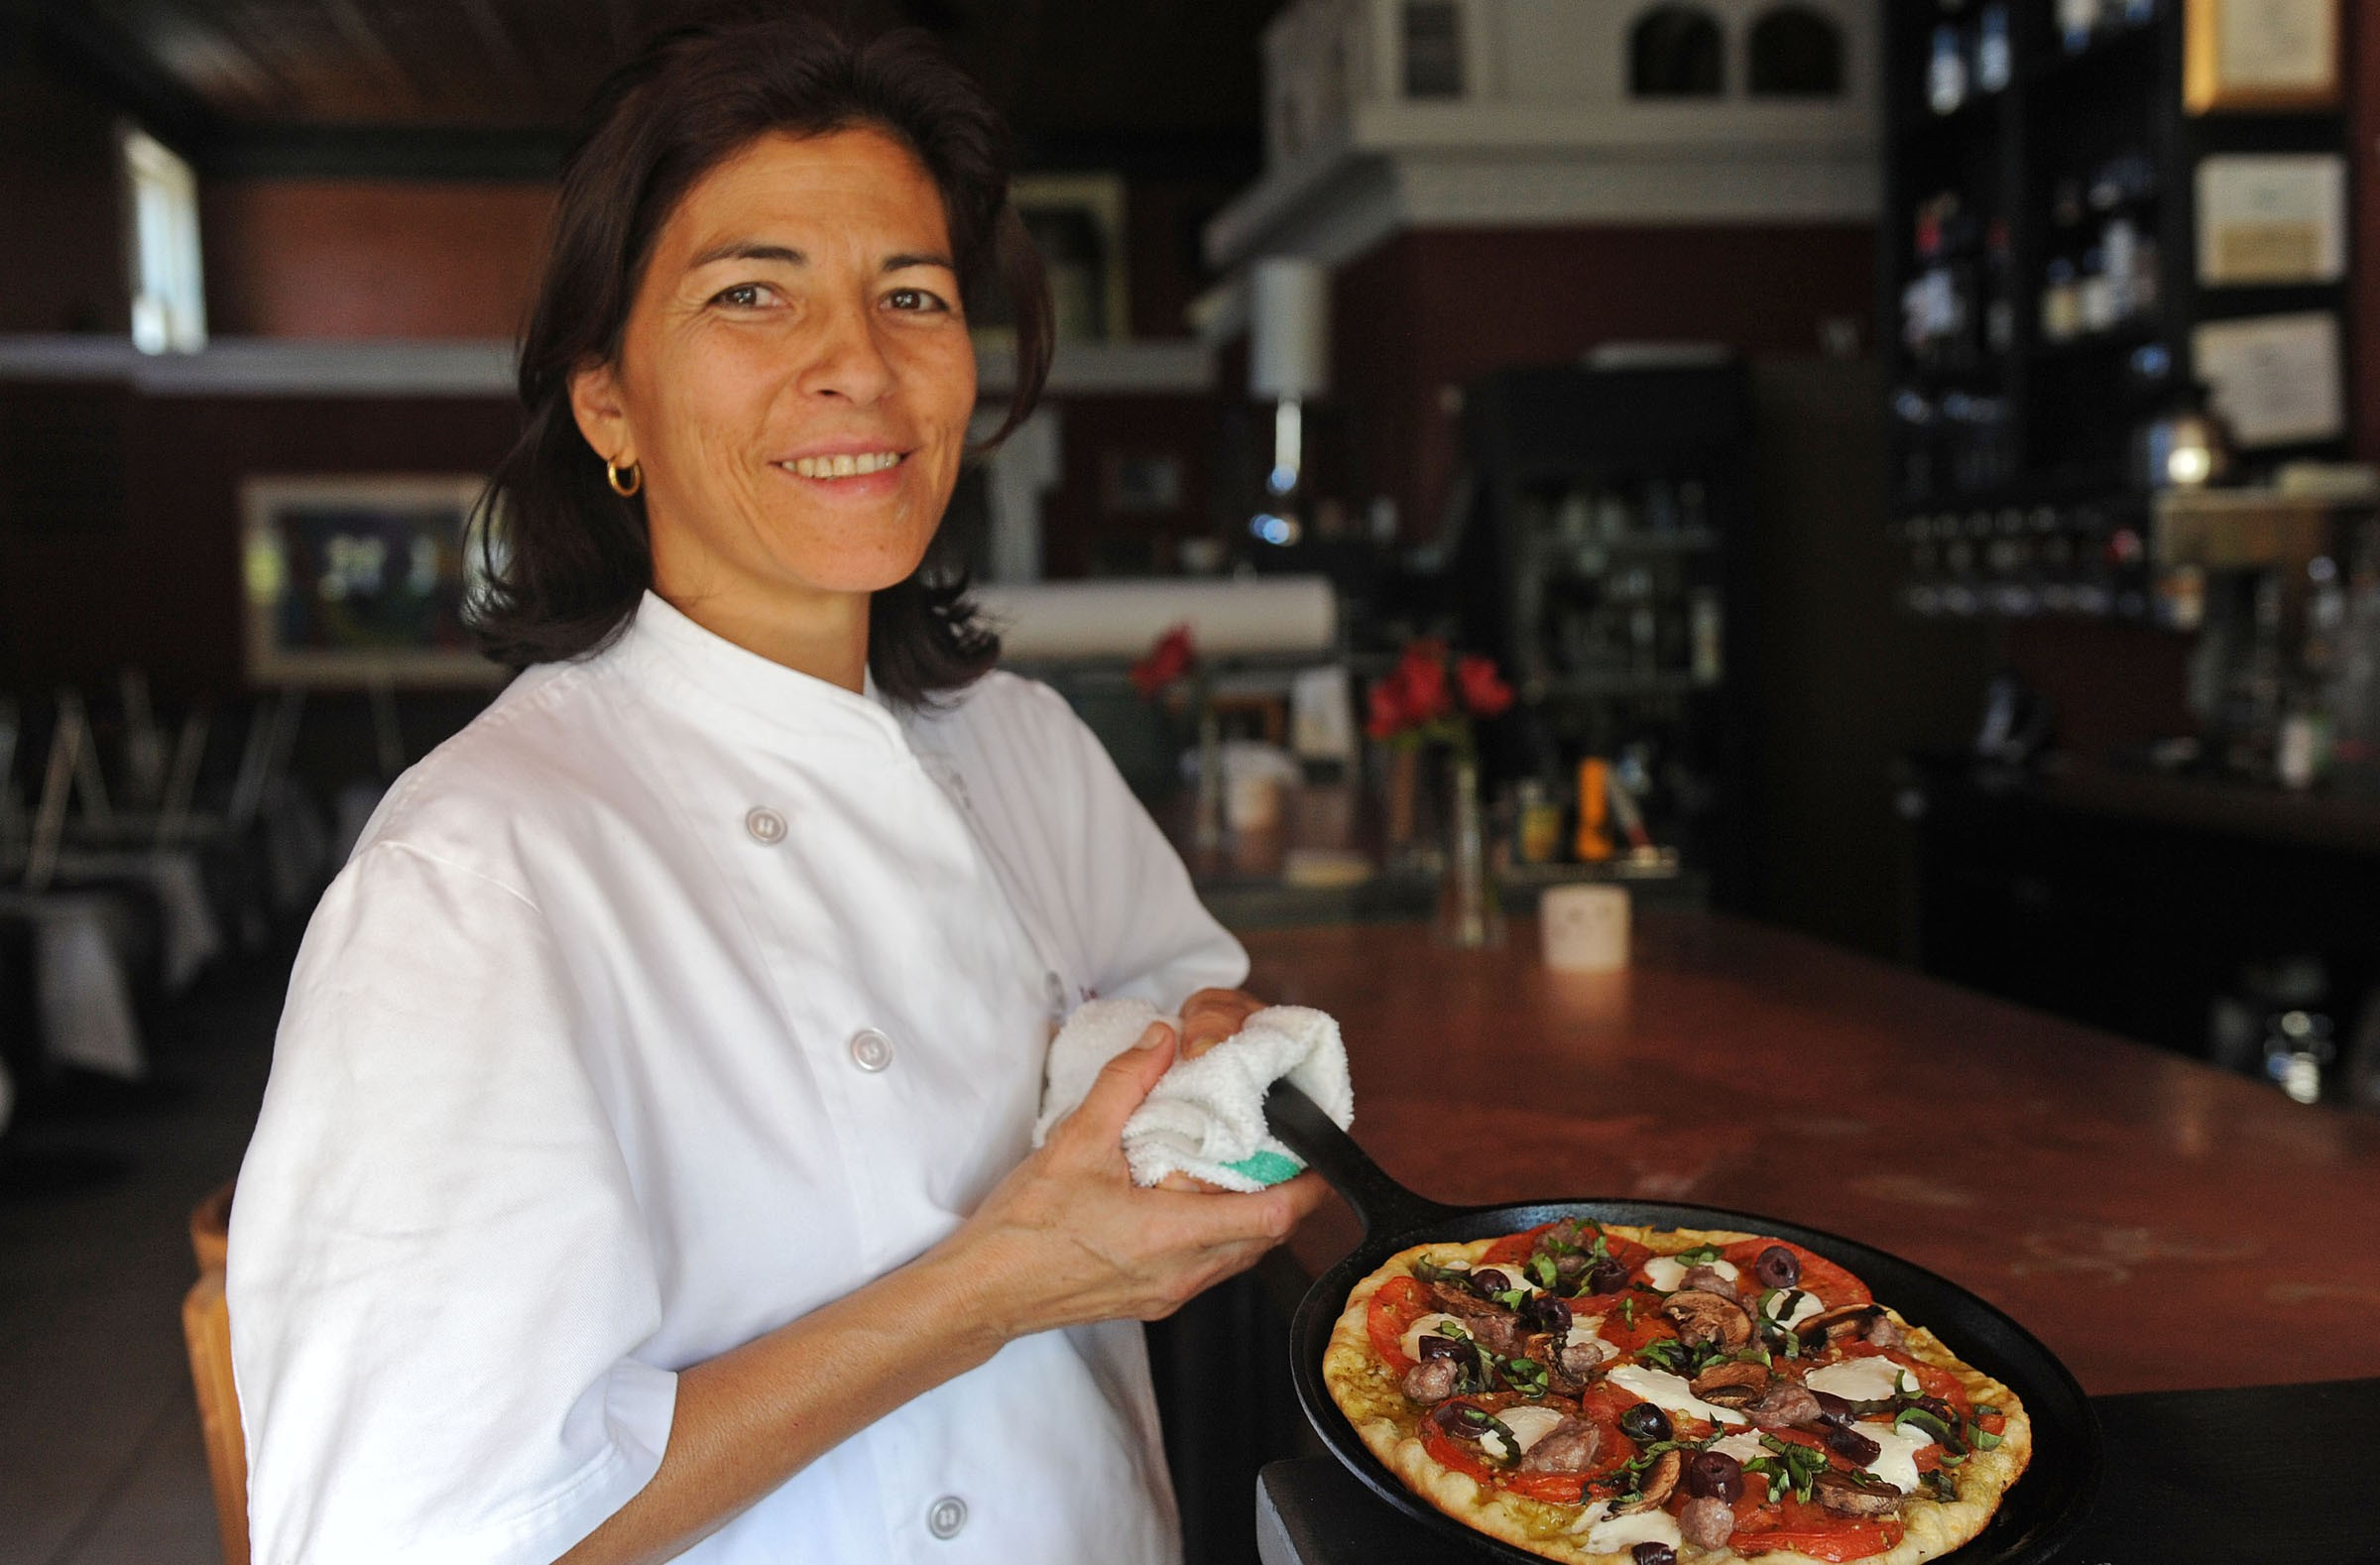 Virginia Rowland shows one of the skillet pizzas now on the menu at Rowland, which is changing its approach and prices. - SCOTT ELMQUIST